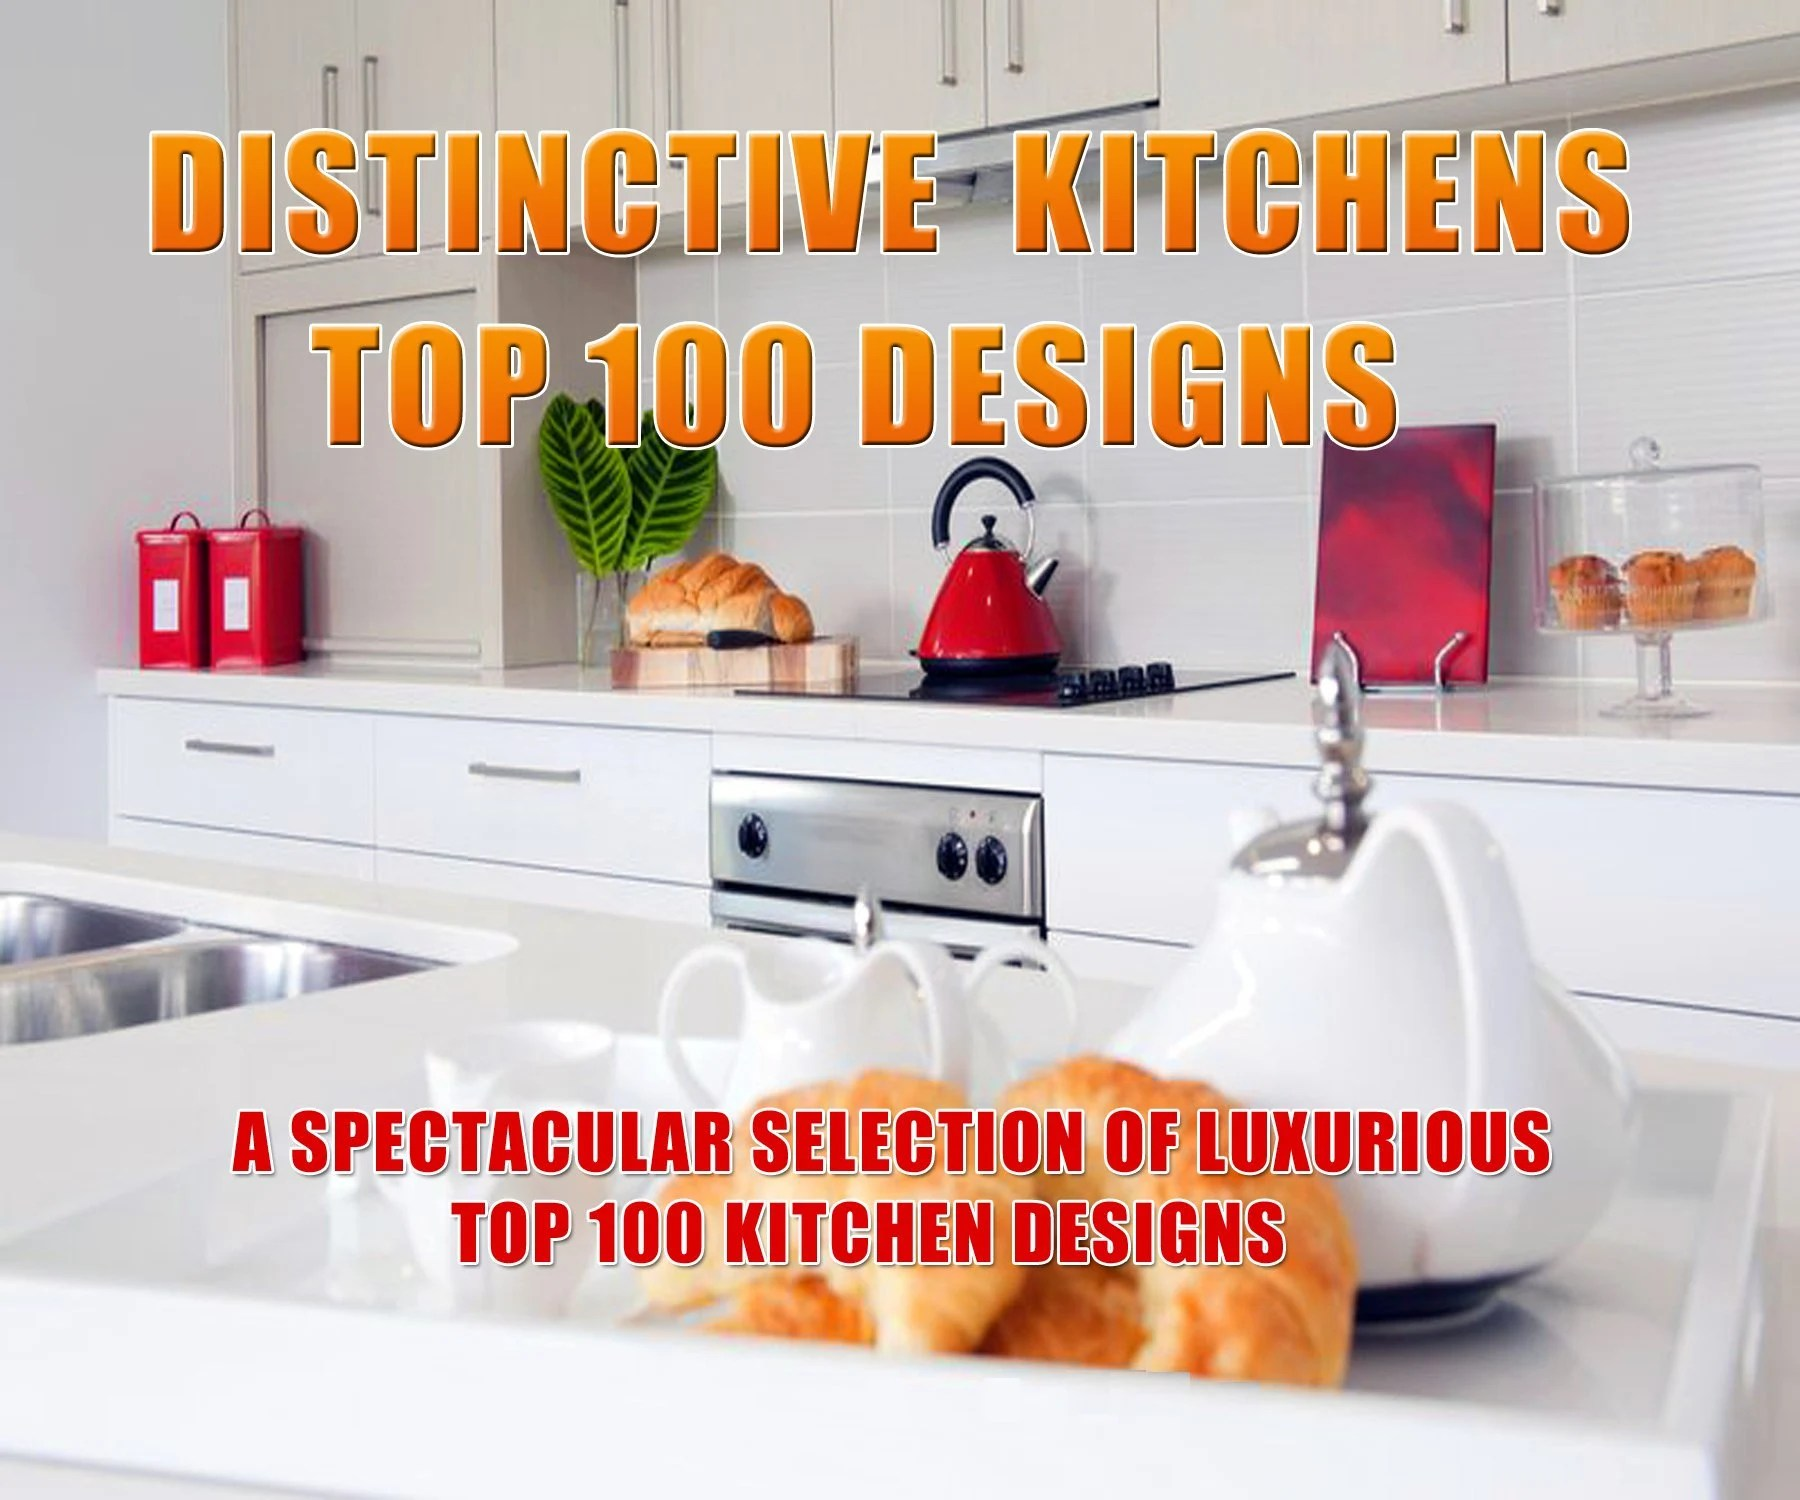 Best Kitchen Design Books Kitchen Design Book Kitchen Decor Kitchen Ideas Etsy